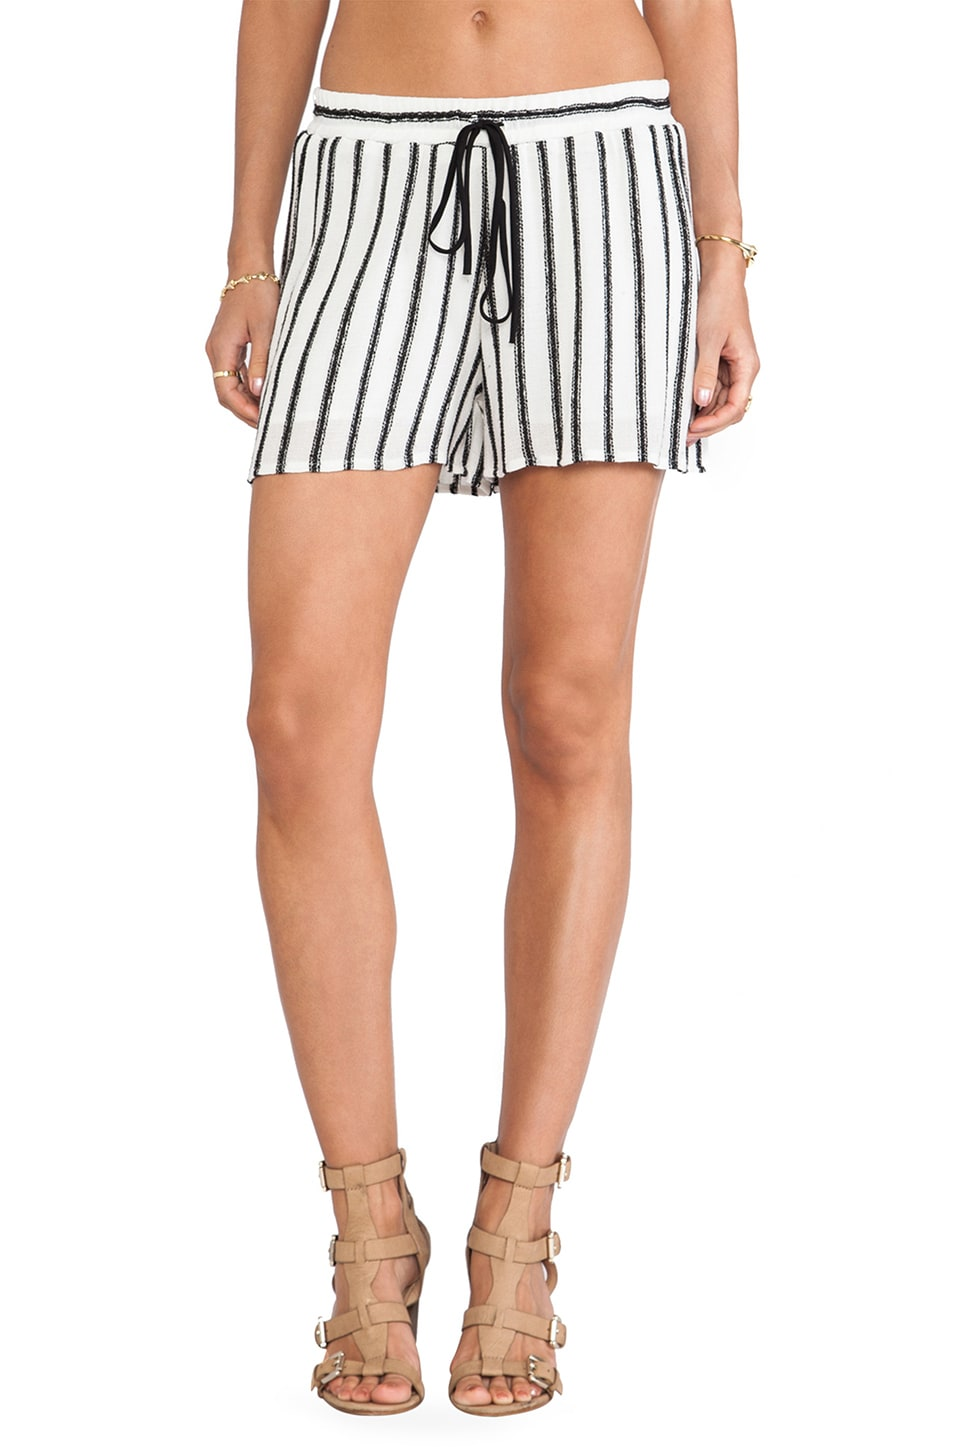 LIV Tie Short in Black & White Stripe